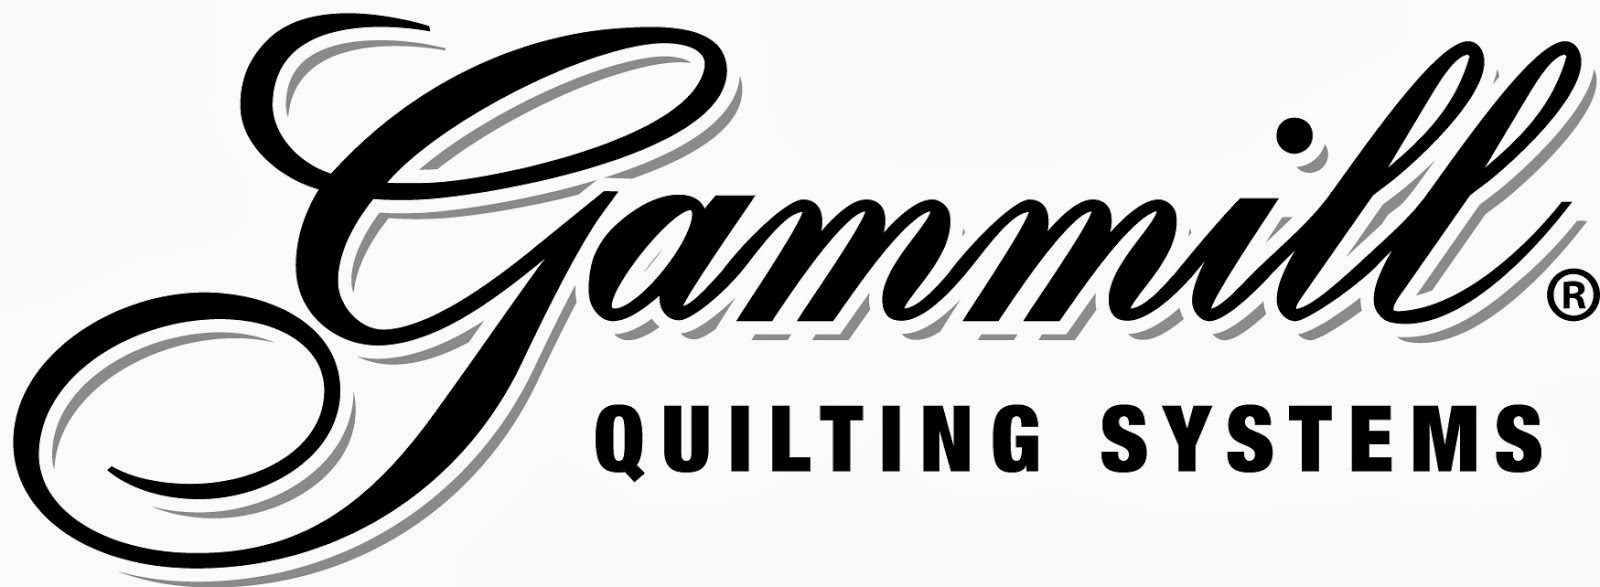 Karen is proud to represent Gammill as one of their Quilting Artists.